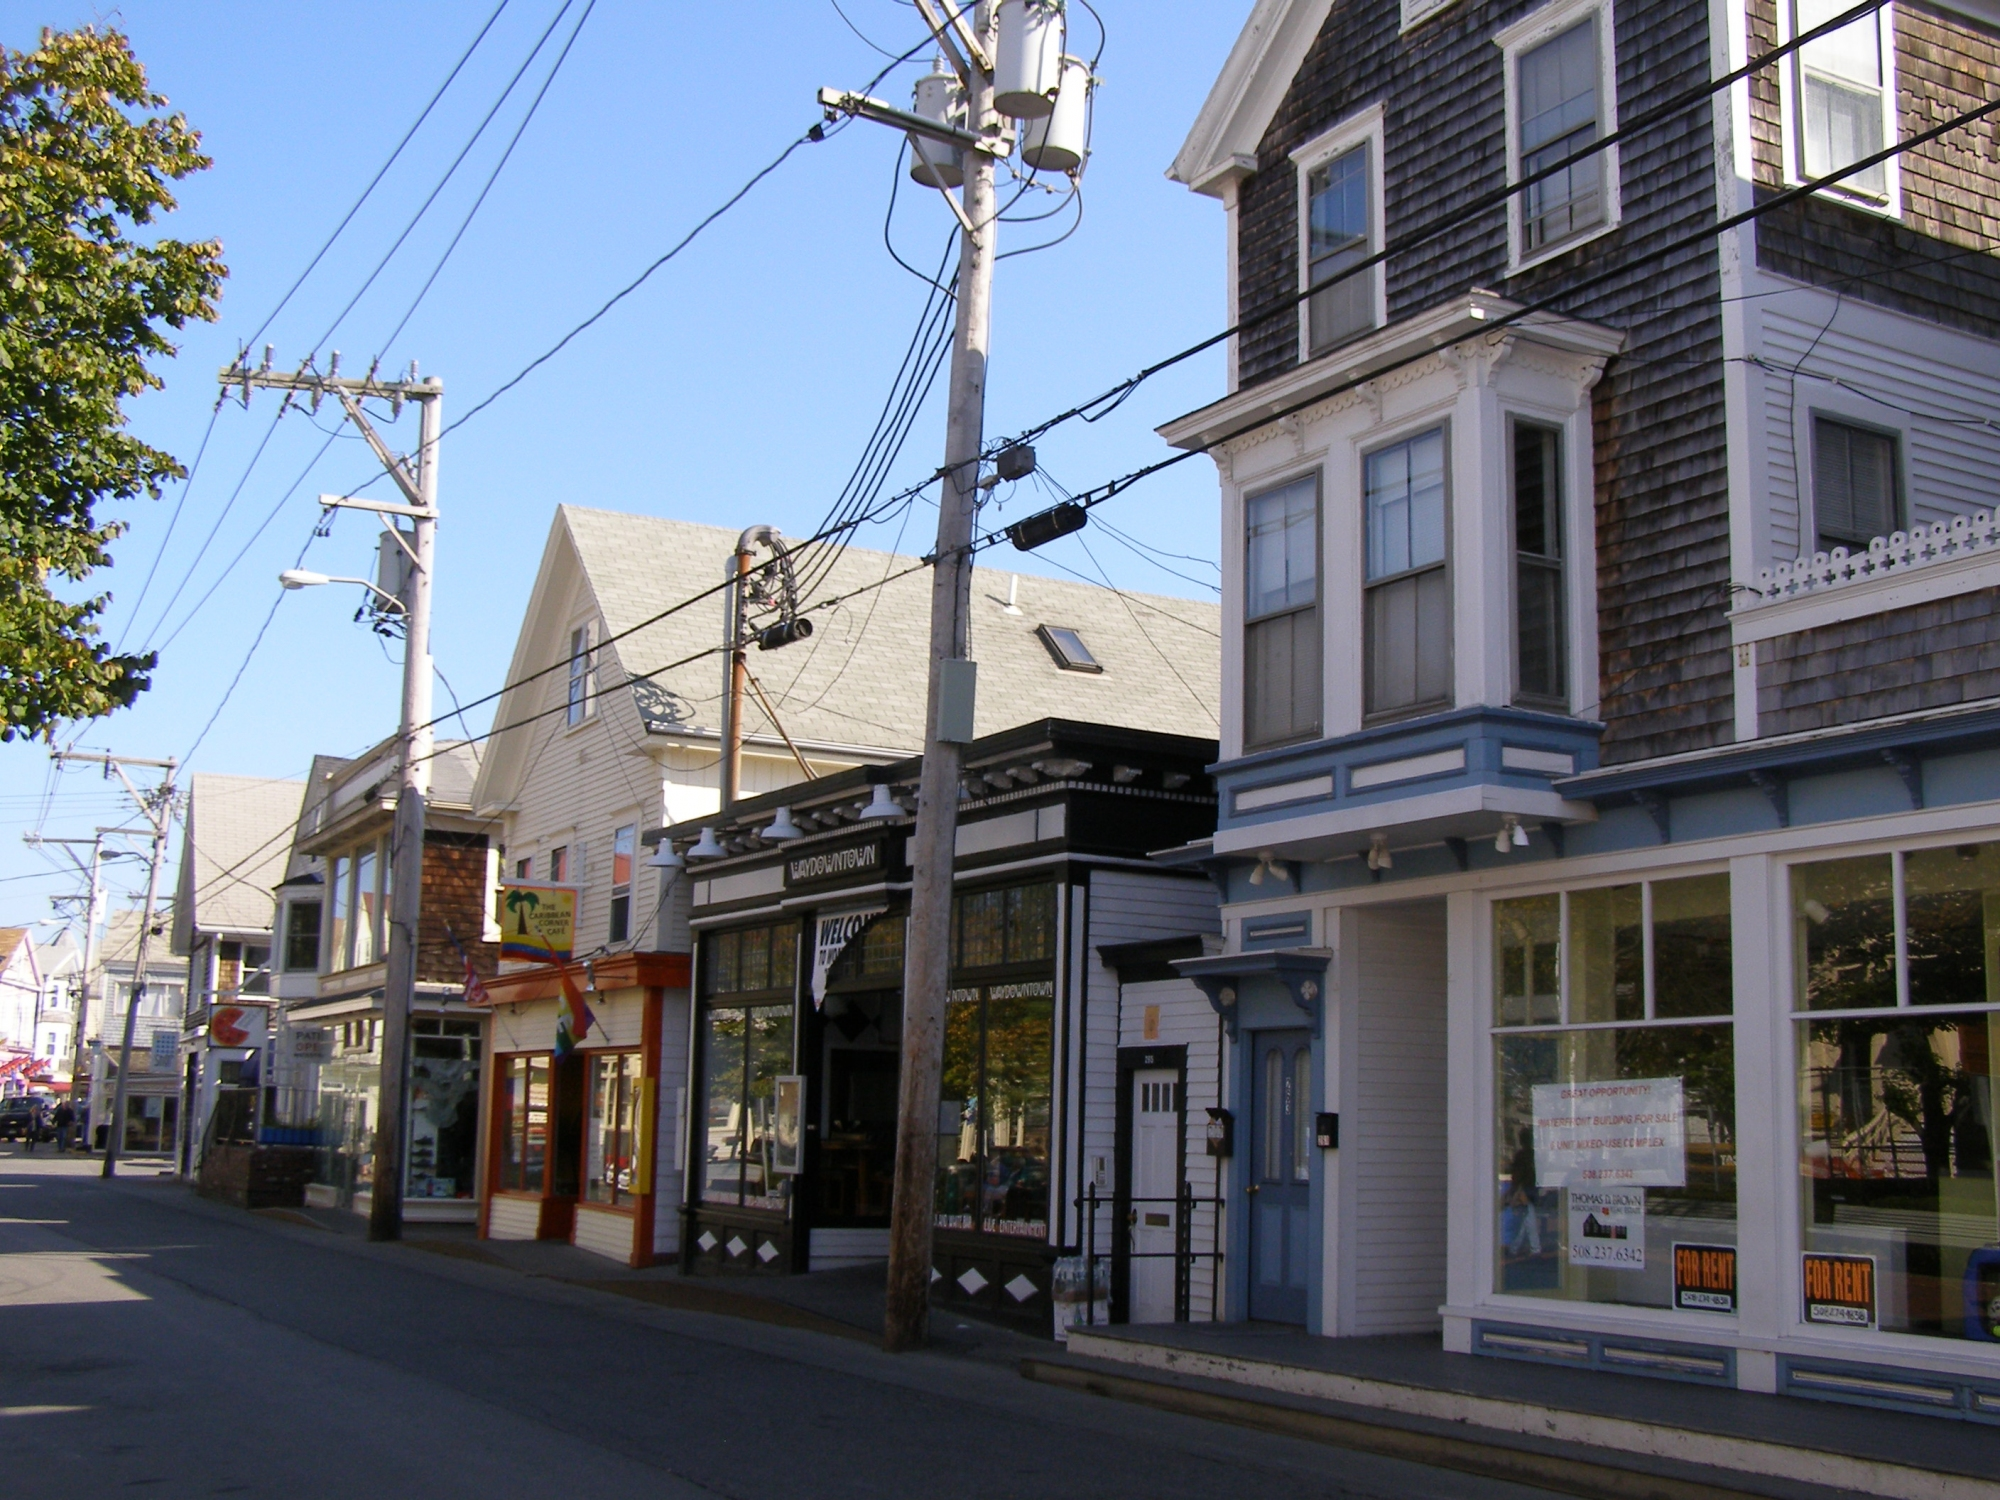 Cape Cod Downtown Street with Shops